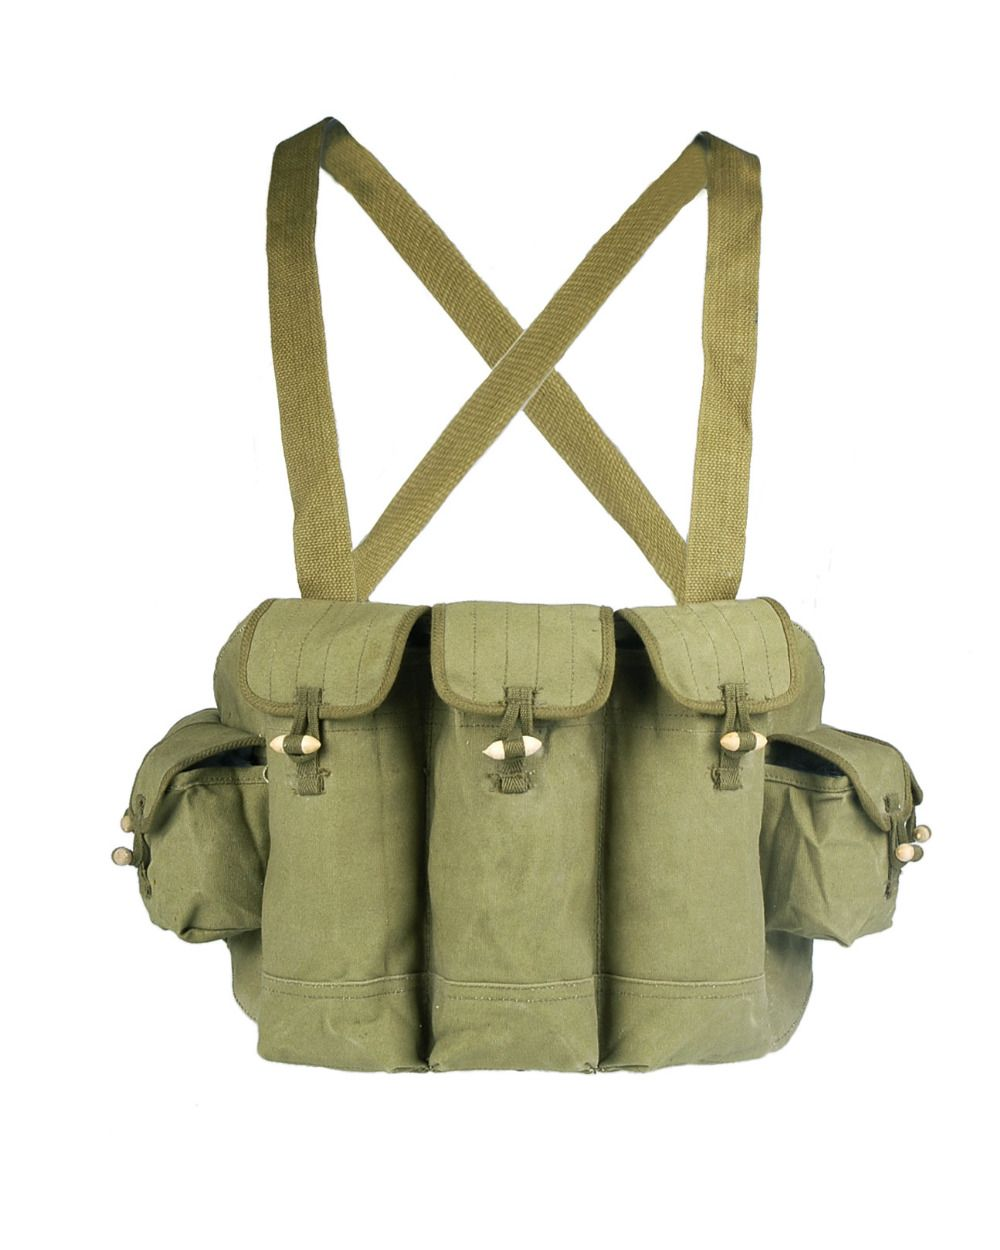 Loklode Chinese Military Surplus AK47 Chest <font><b>Pouch</b></font> Rig Ammo Mag Bandolier Type 56